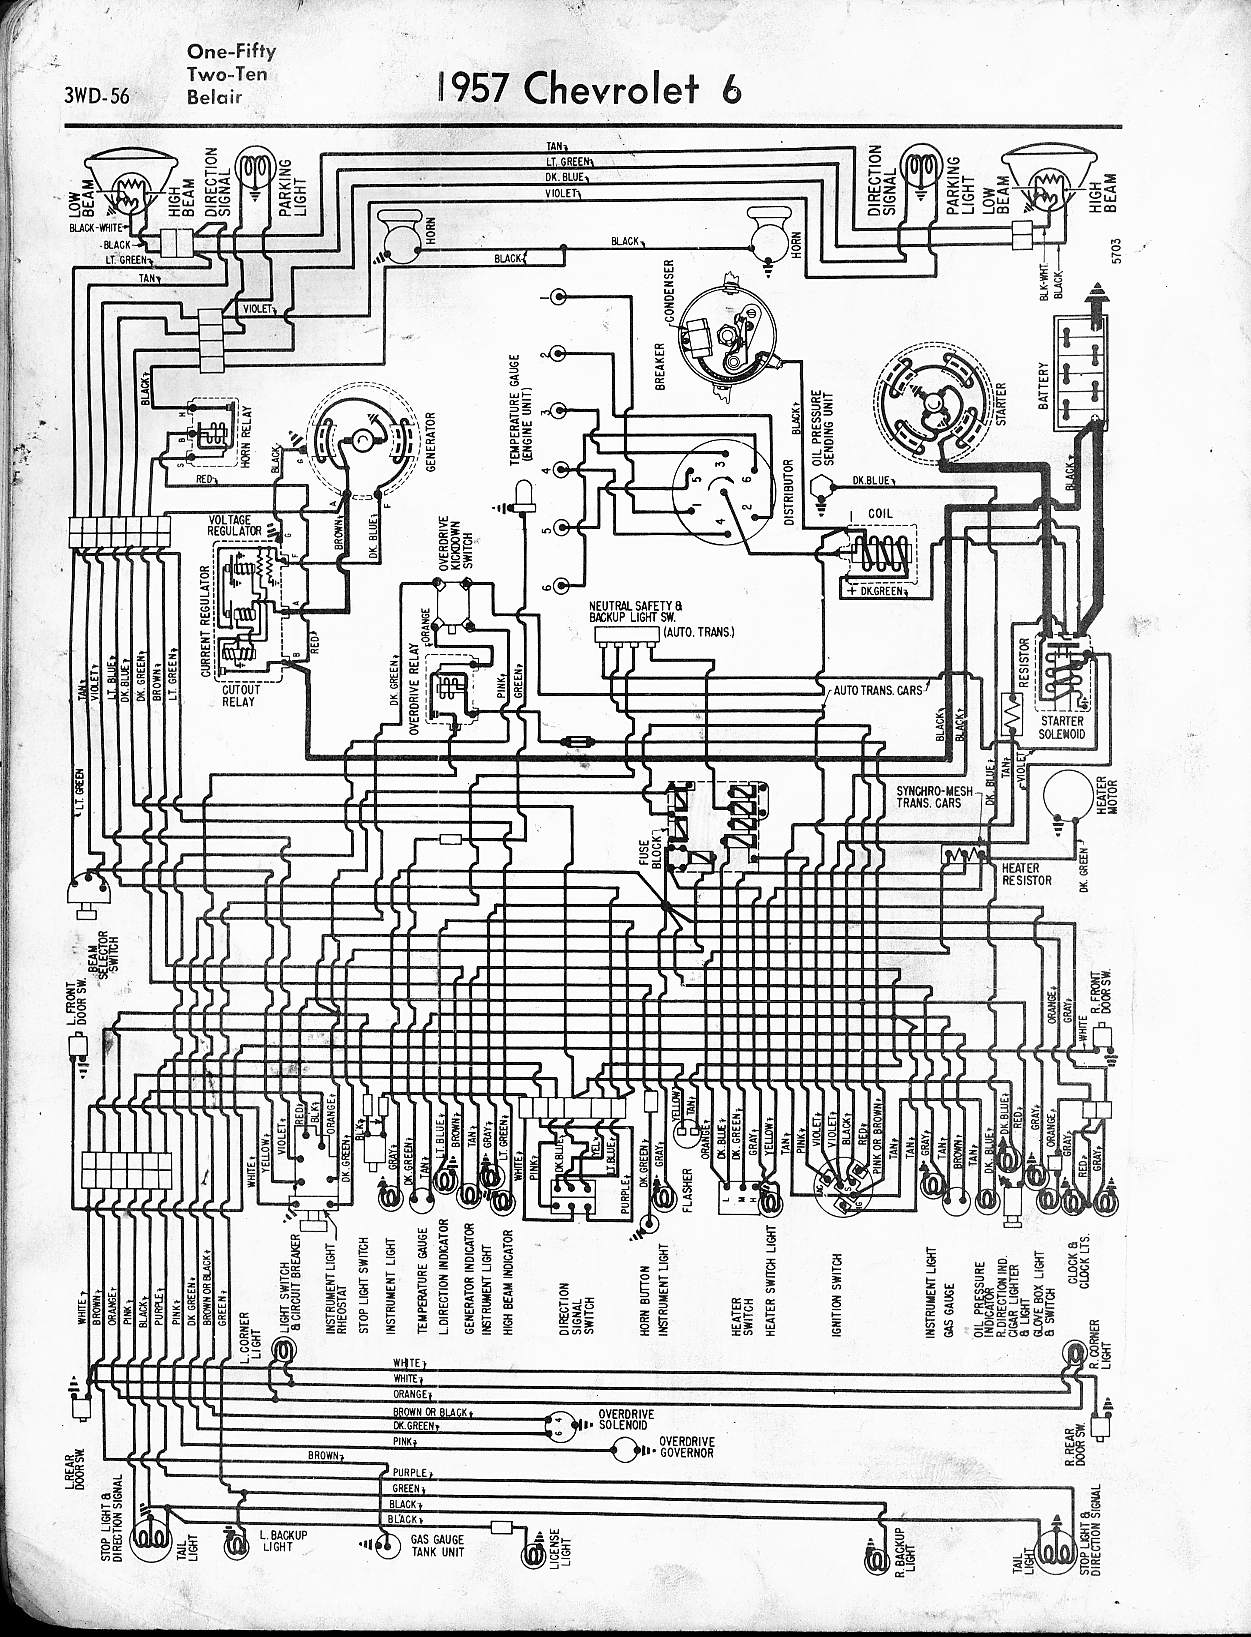 MWireChev57_3WD 056 57 65 chevy wiring diagrams 1957 bel air wiring diagram at gsmx.co